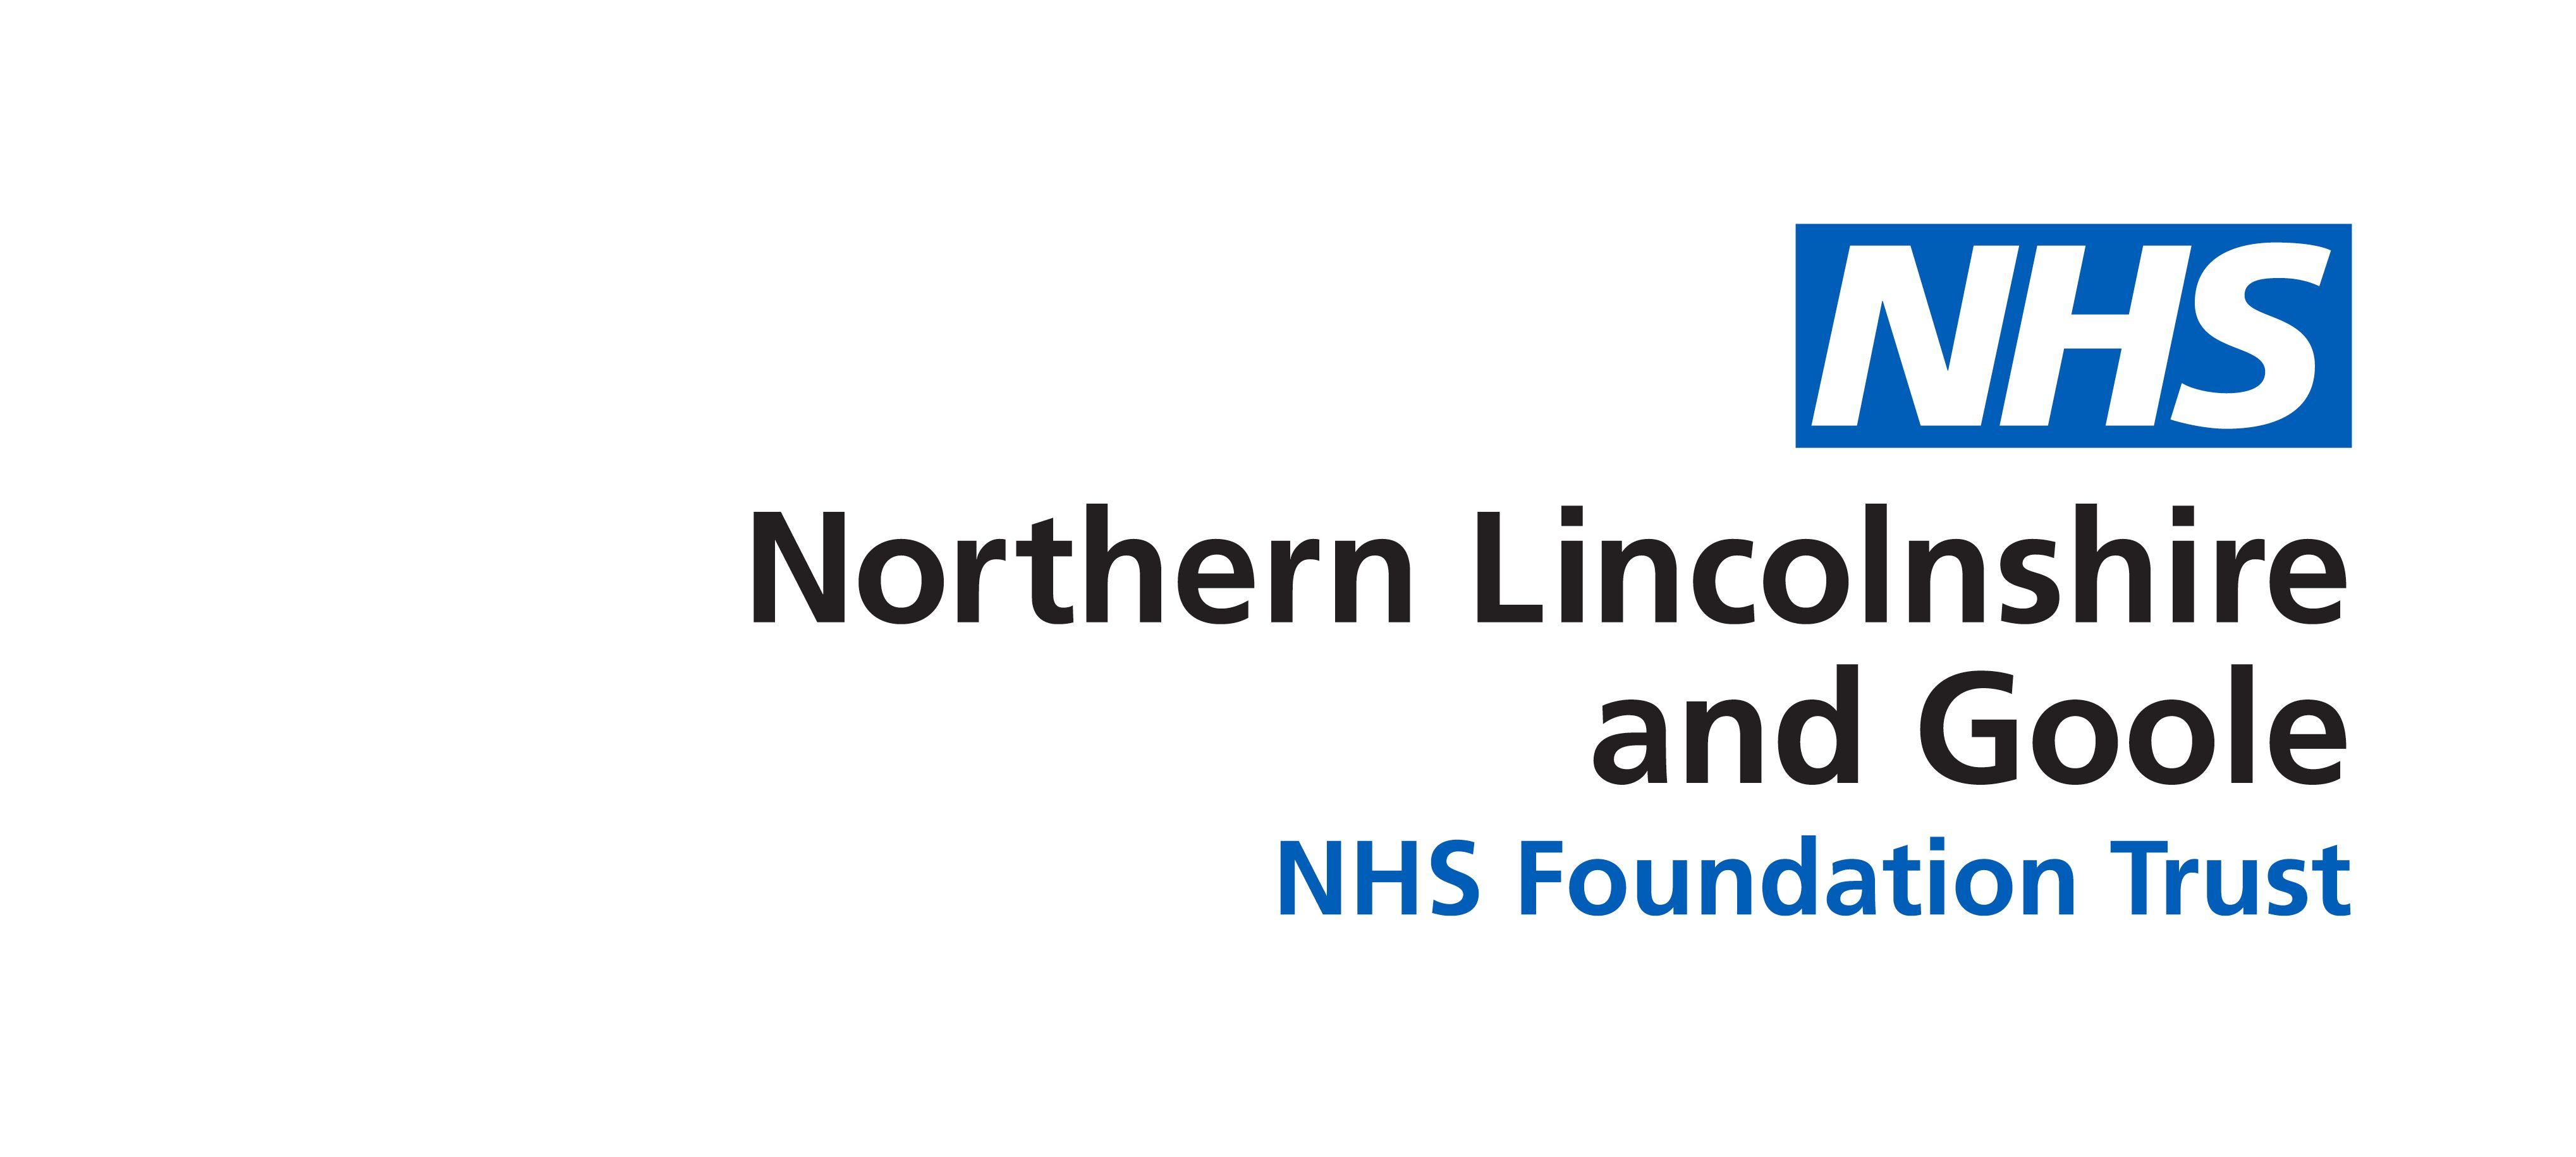 Northern Lincolnshire and Goole NHS Foundation Trust logo